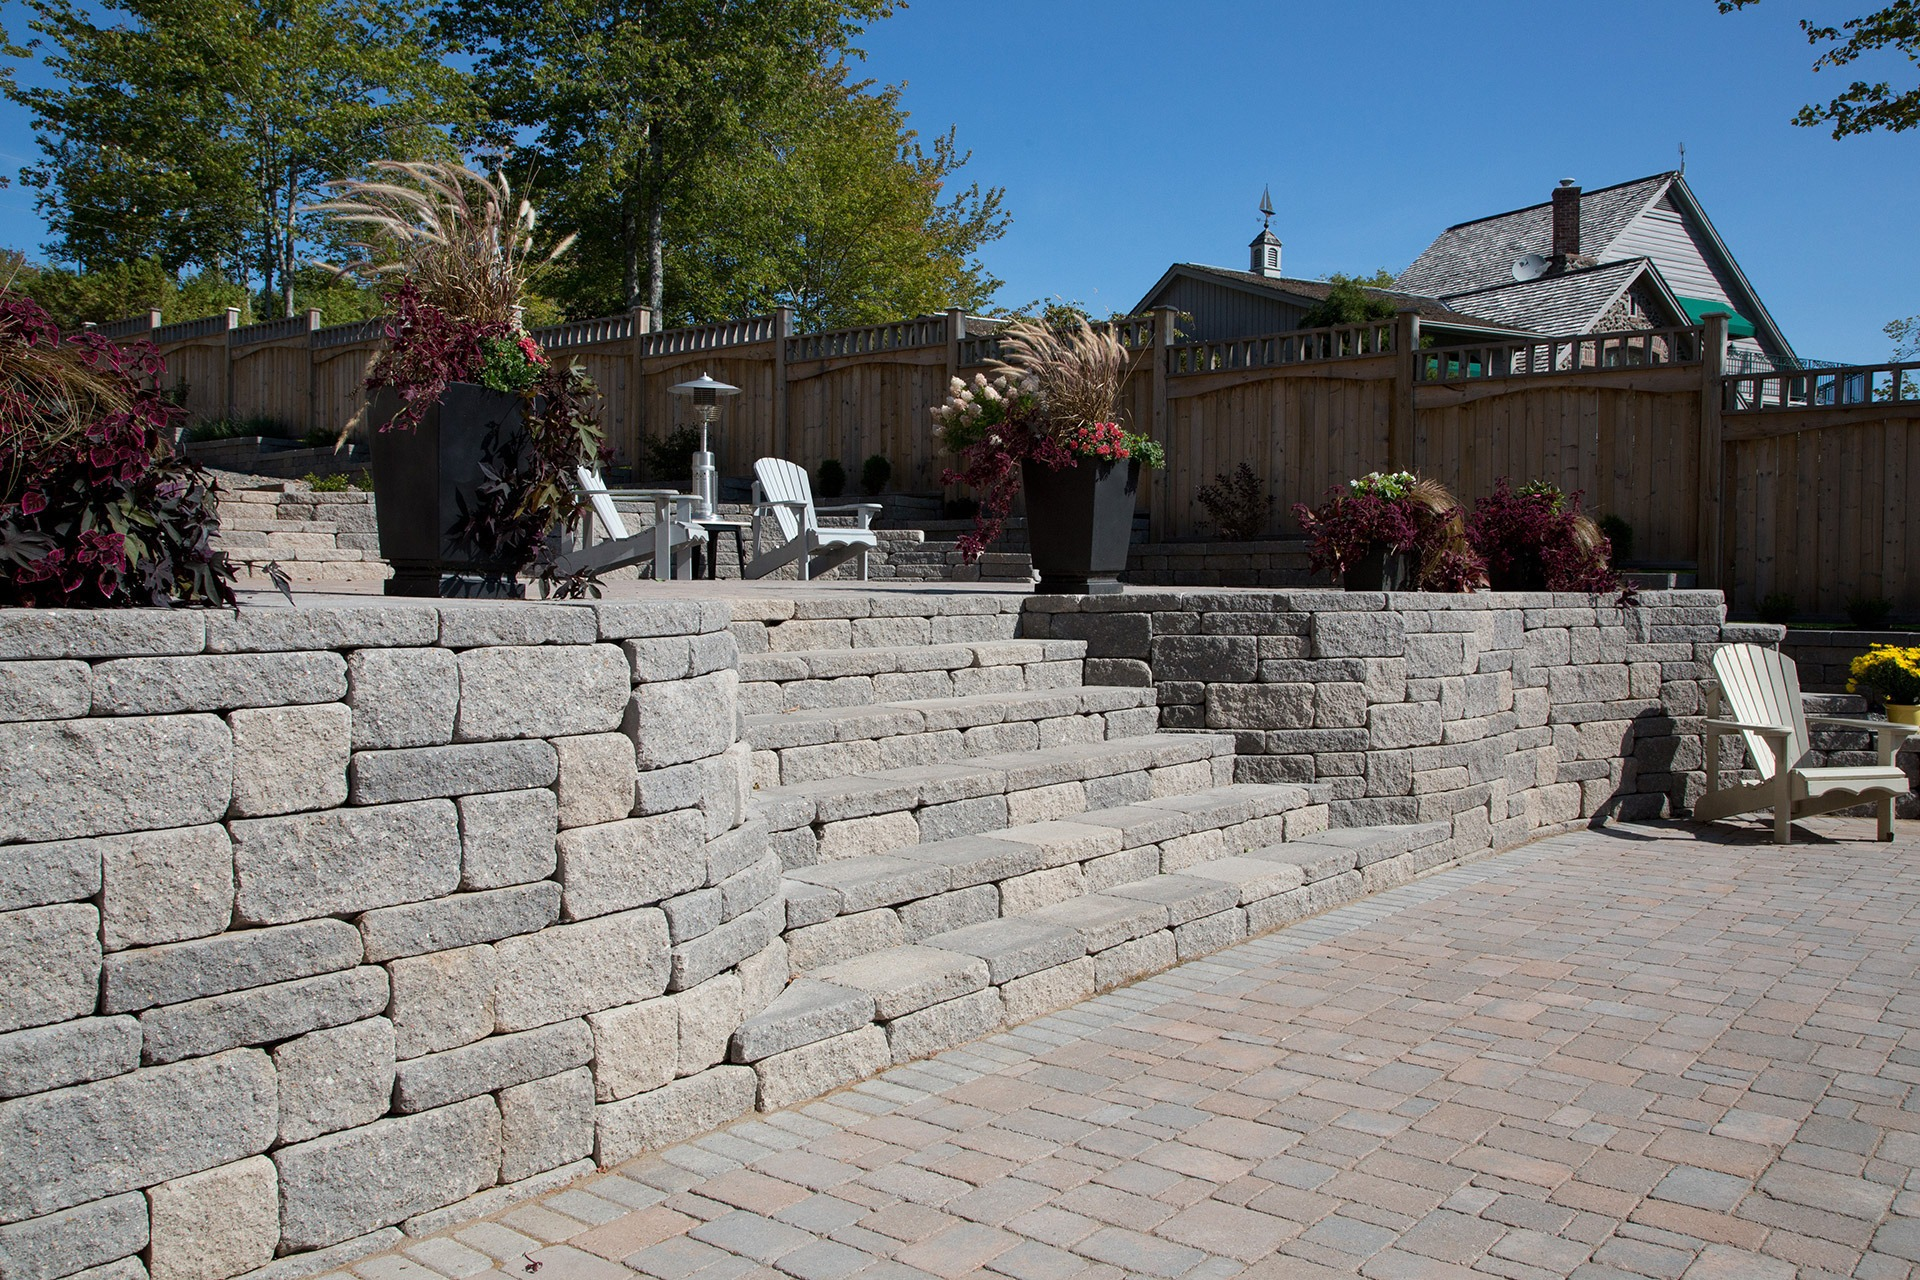 Backyard area of a home using AB Abbey Blend brick